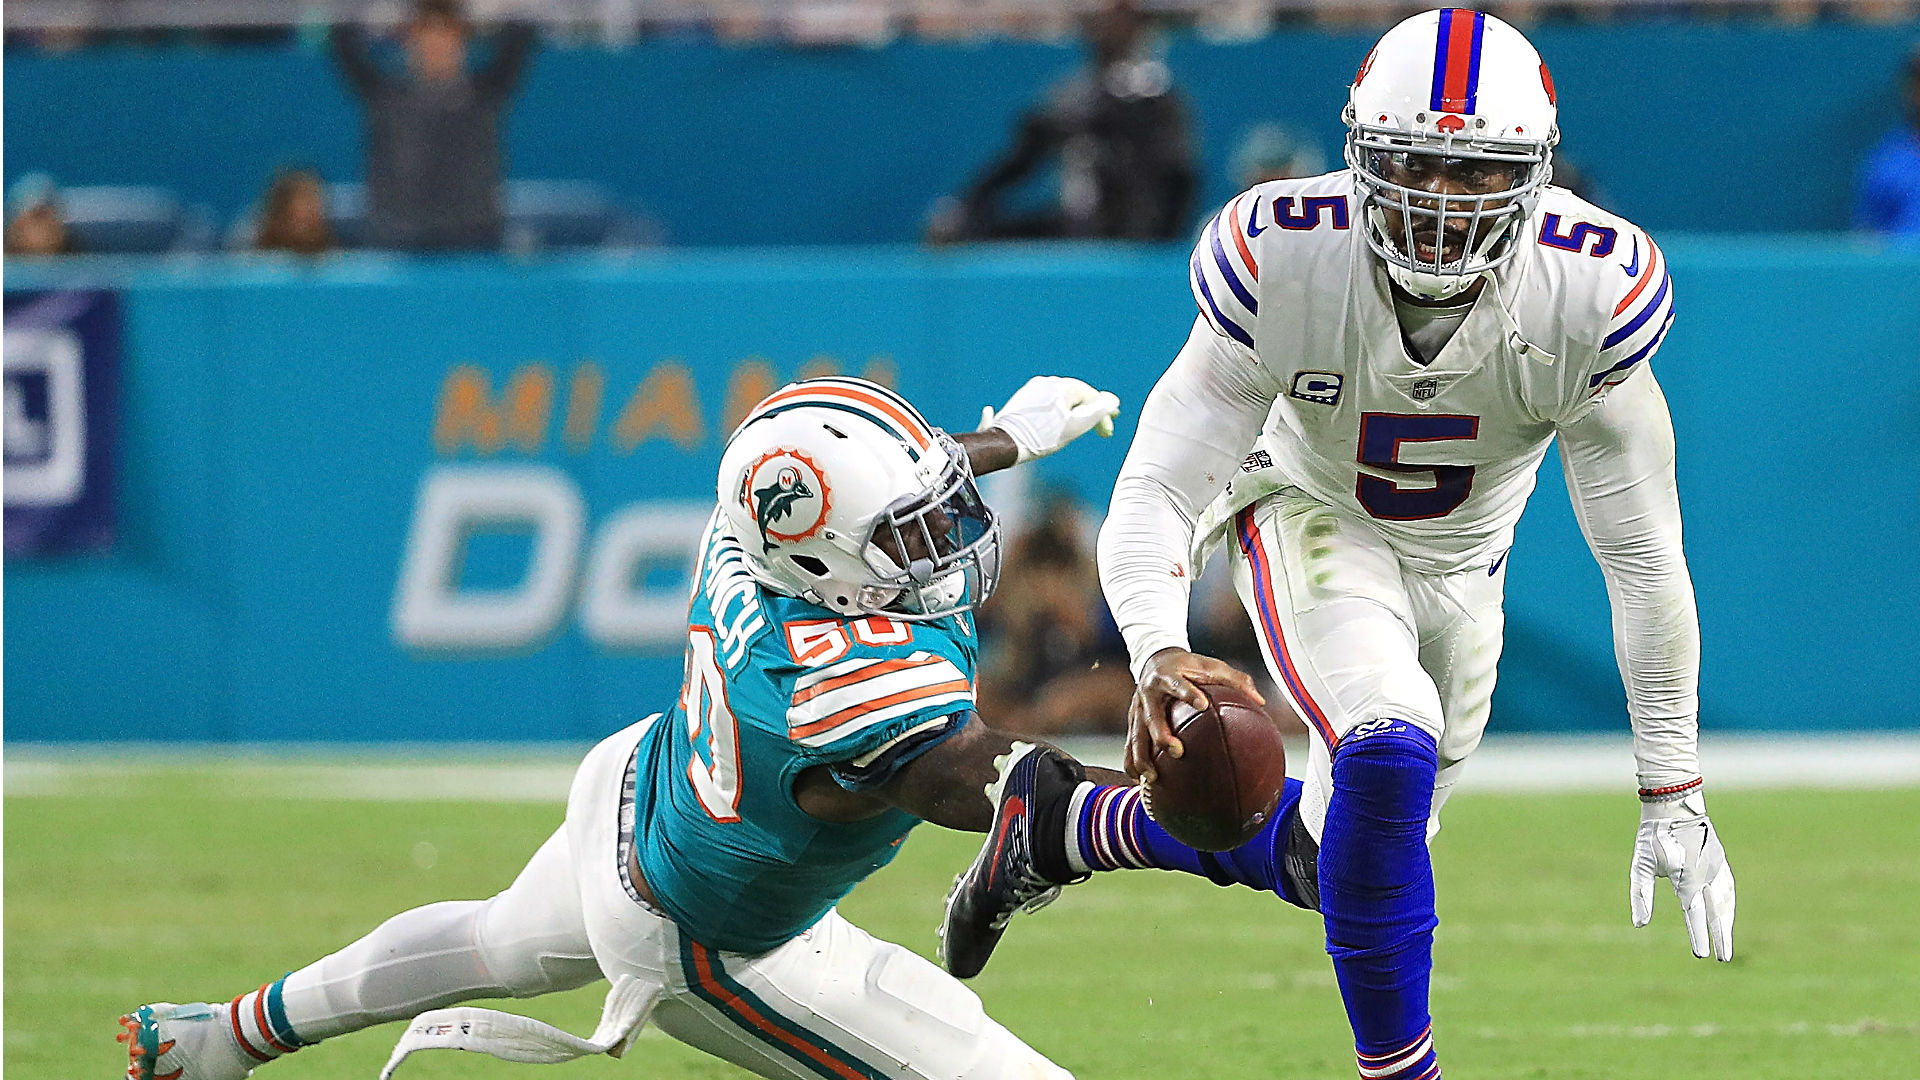 LeSean McCoy injury: Buffalo Bills running back carted off field against Dolphins